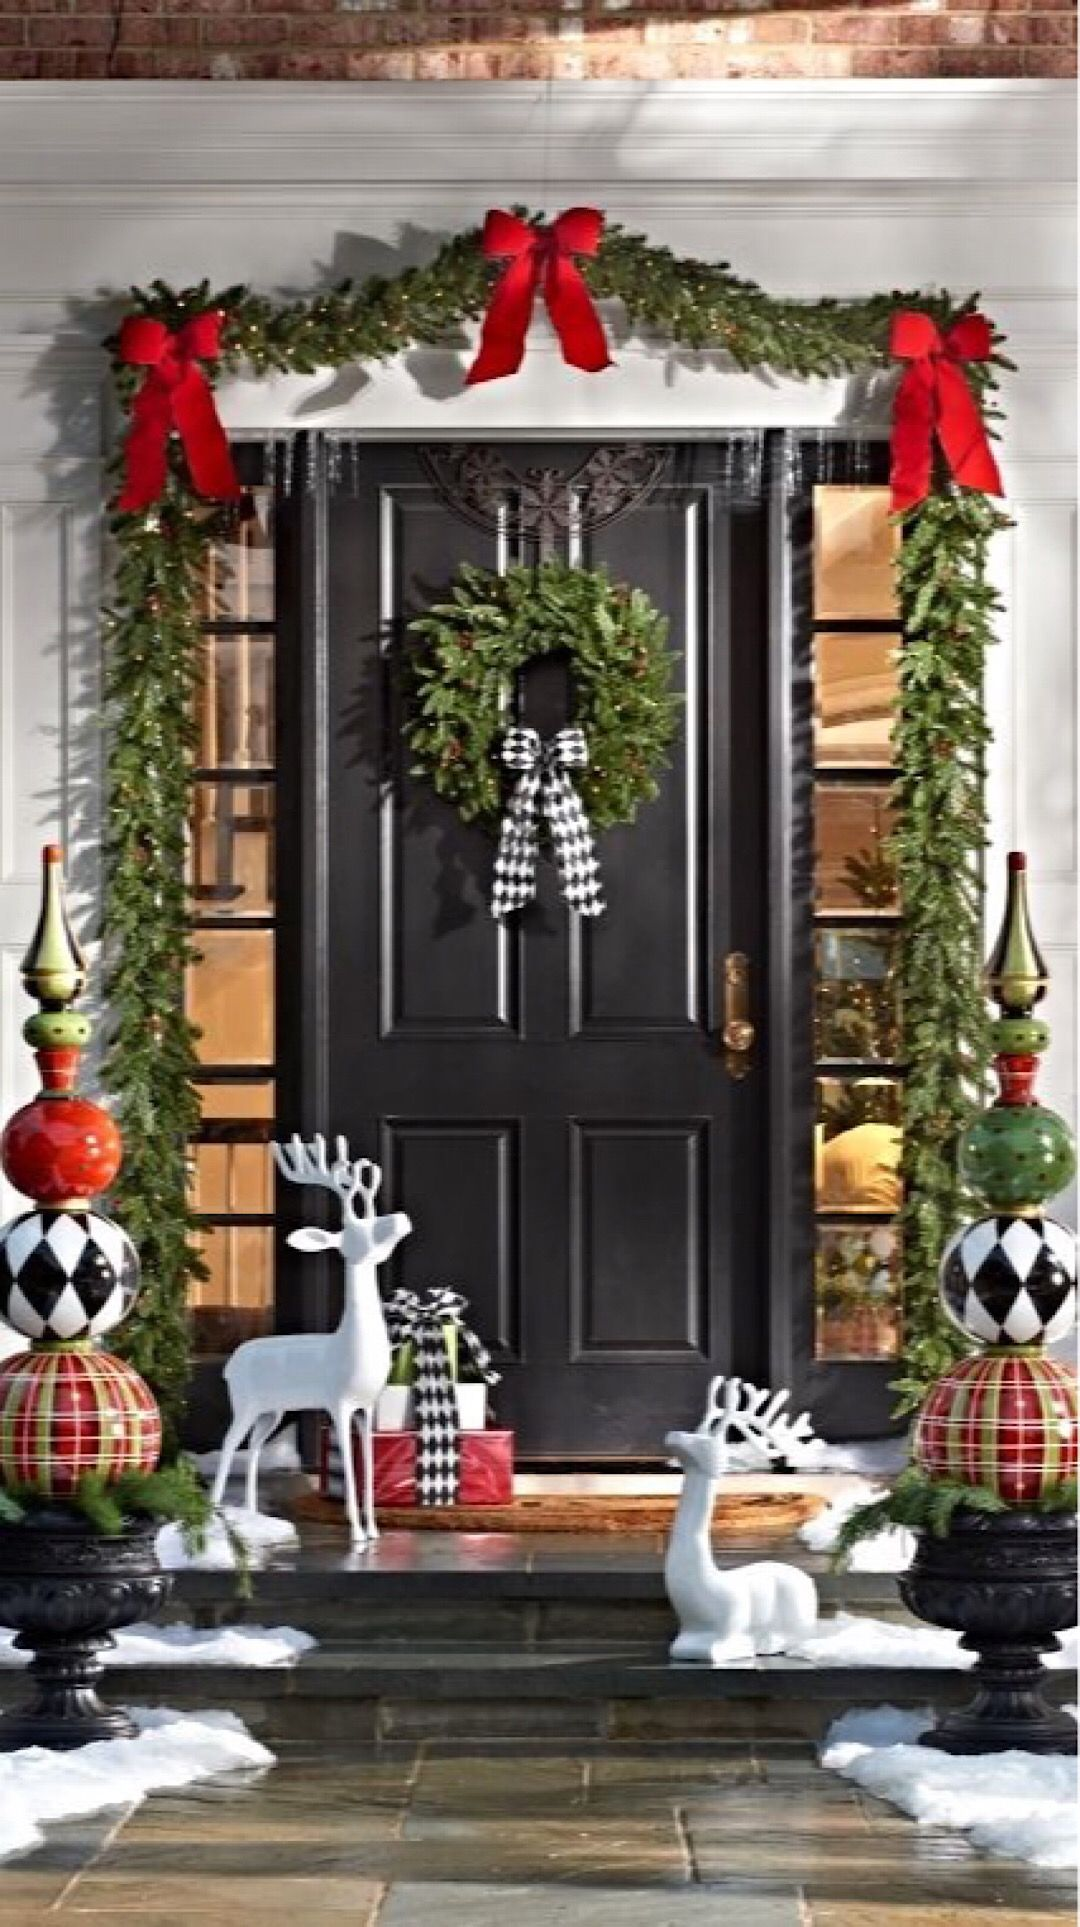 Best Of How to Decorate House for Christmas